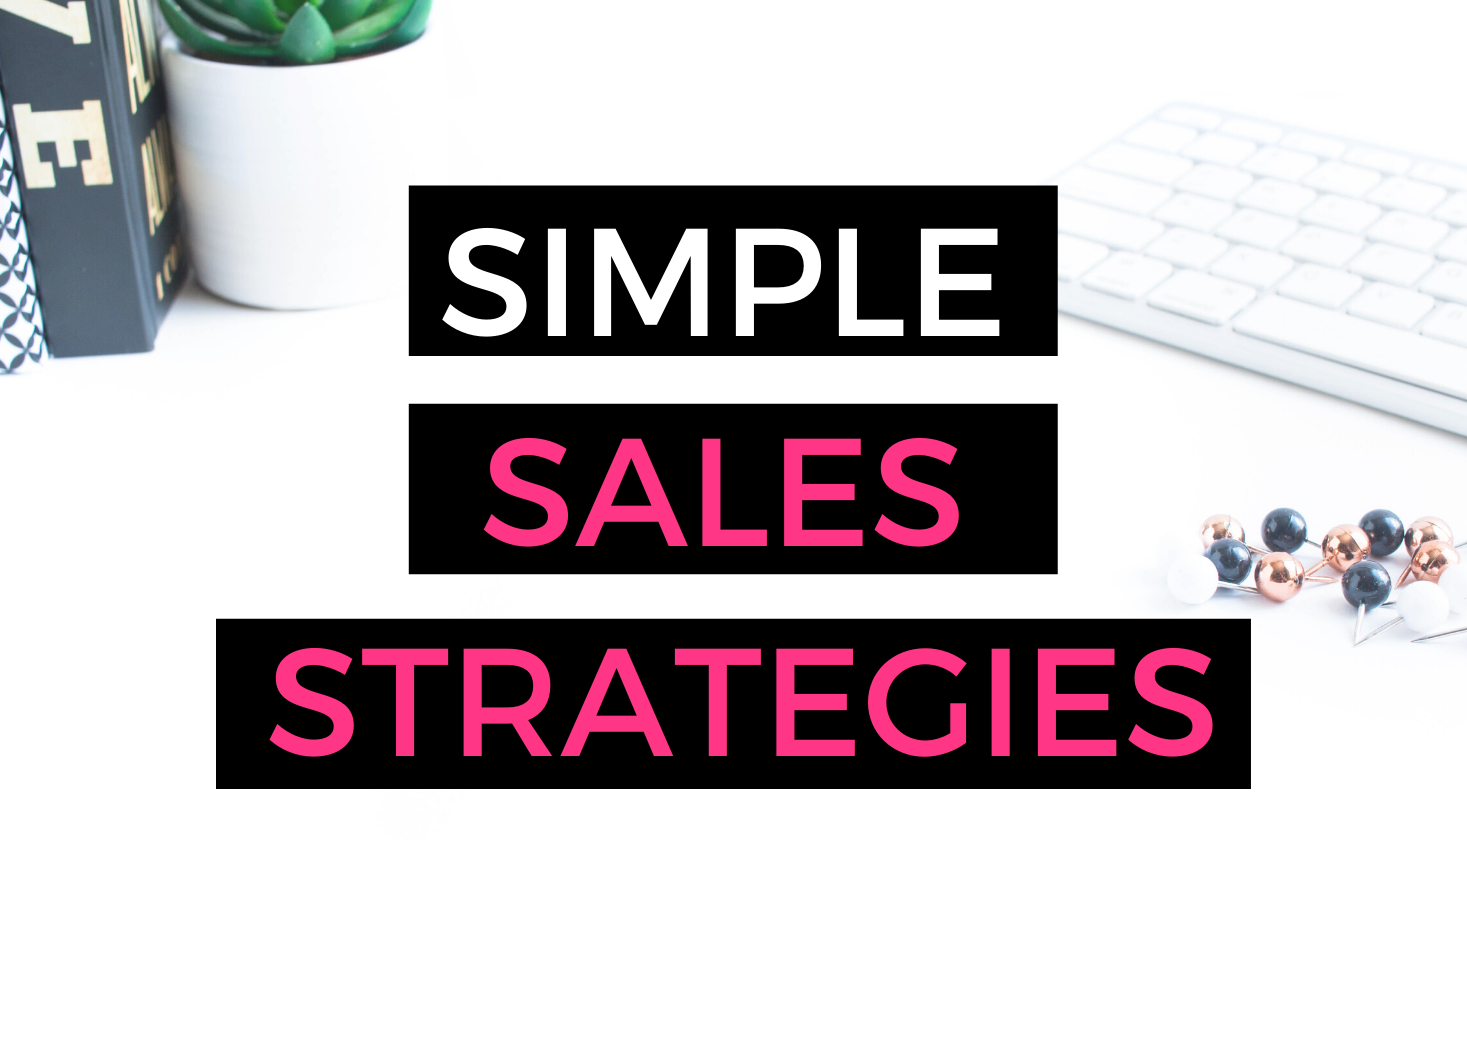 Simple Sales Strategies For Entrepreneurs